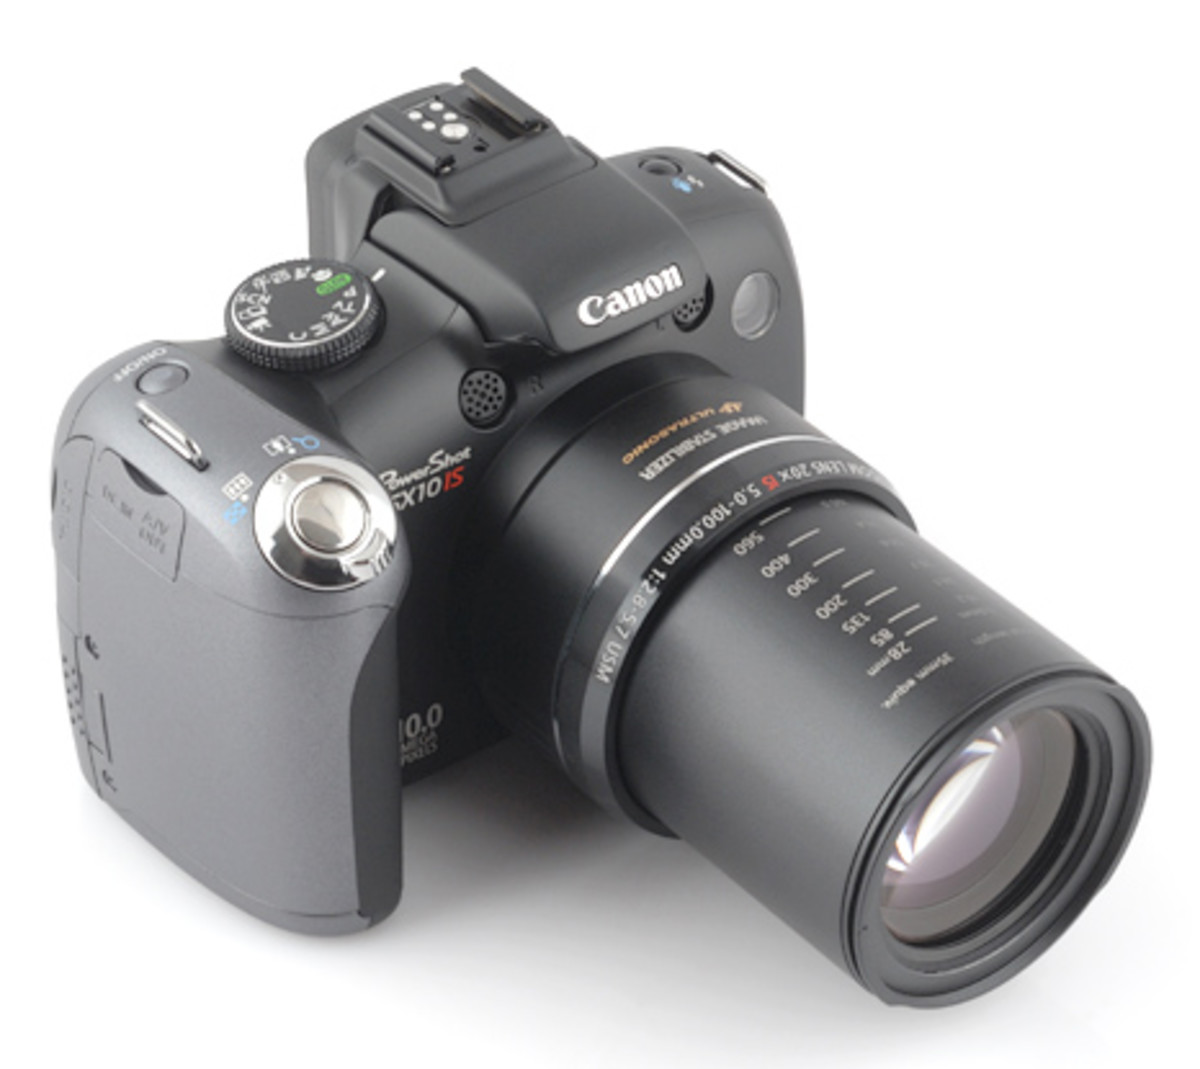 I use a Canon SX10 IS Super Zoom